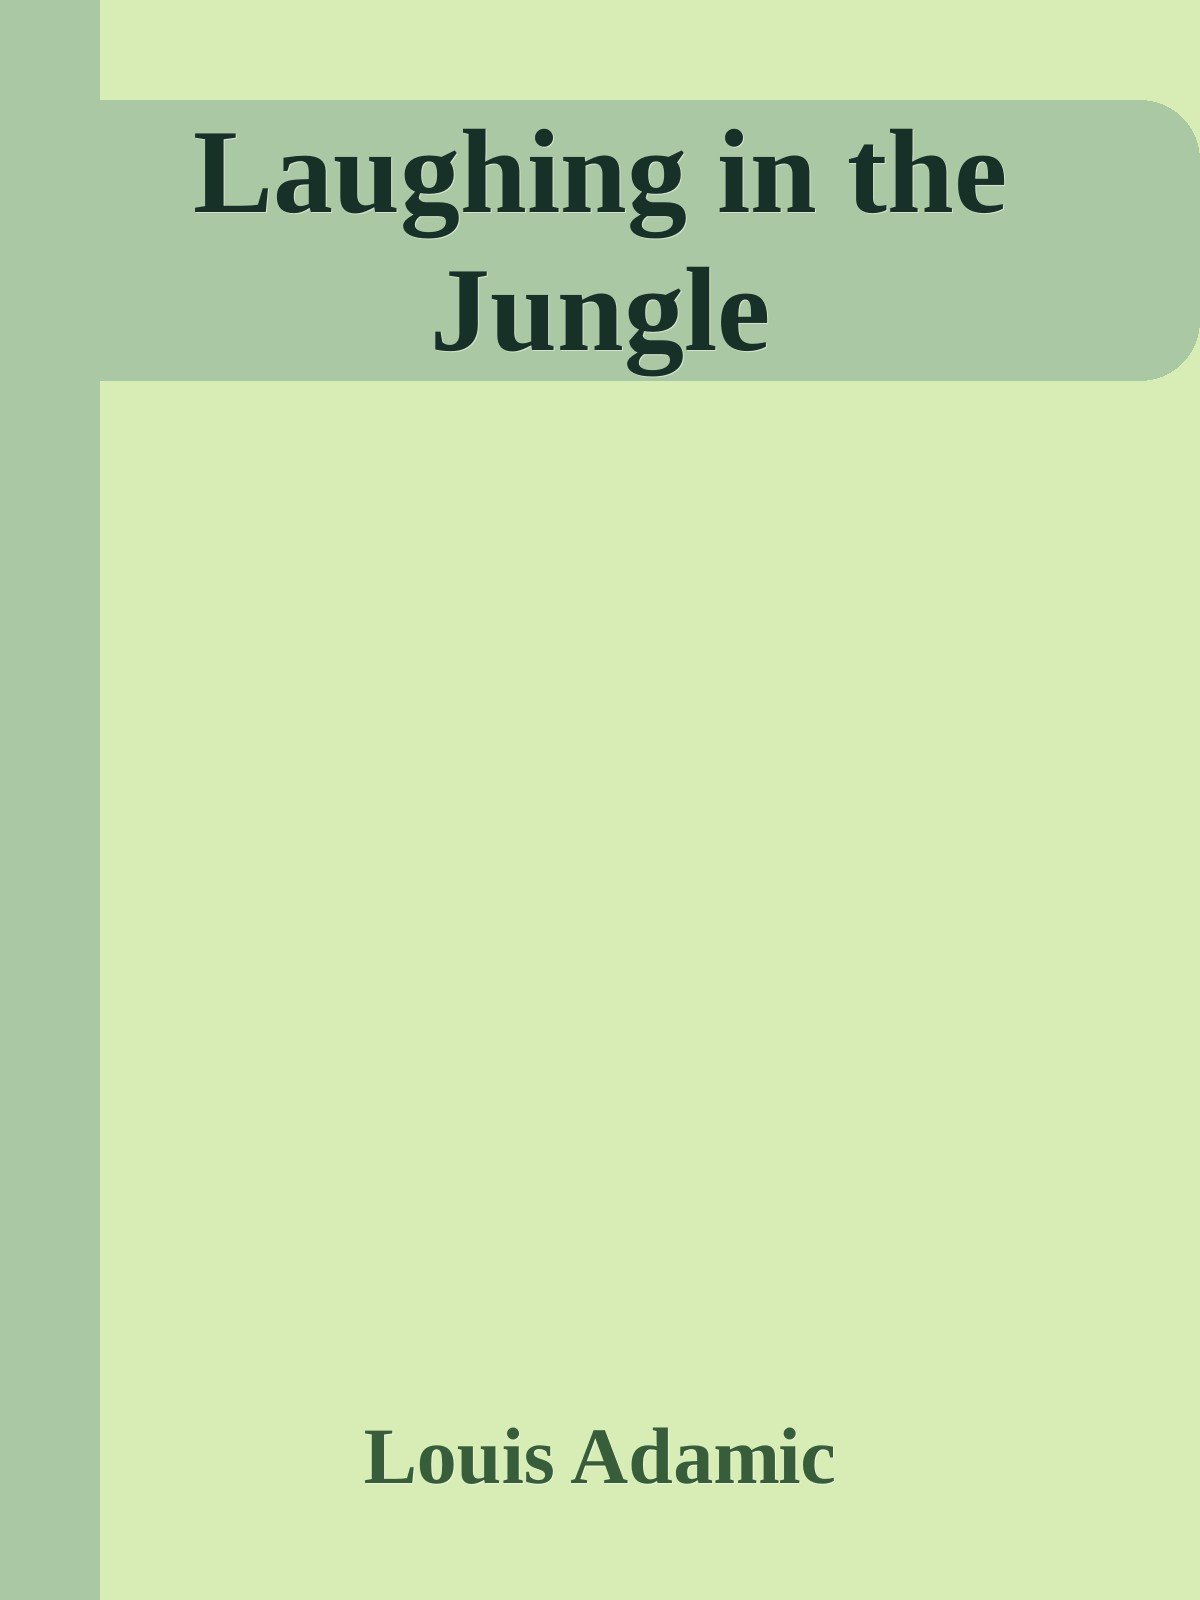 Laughing in the Jungle 1st Edition Pdf Free Download